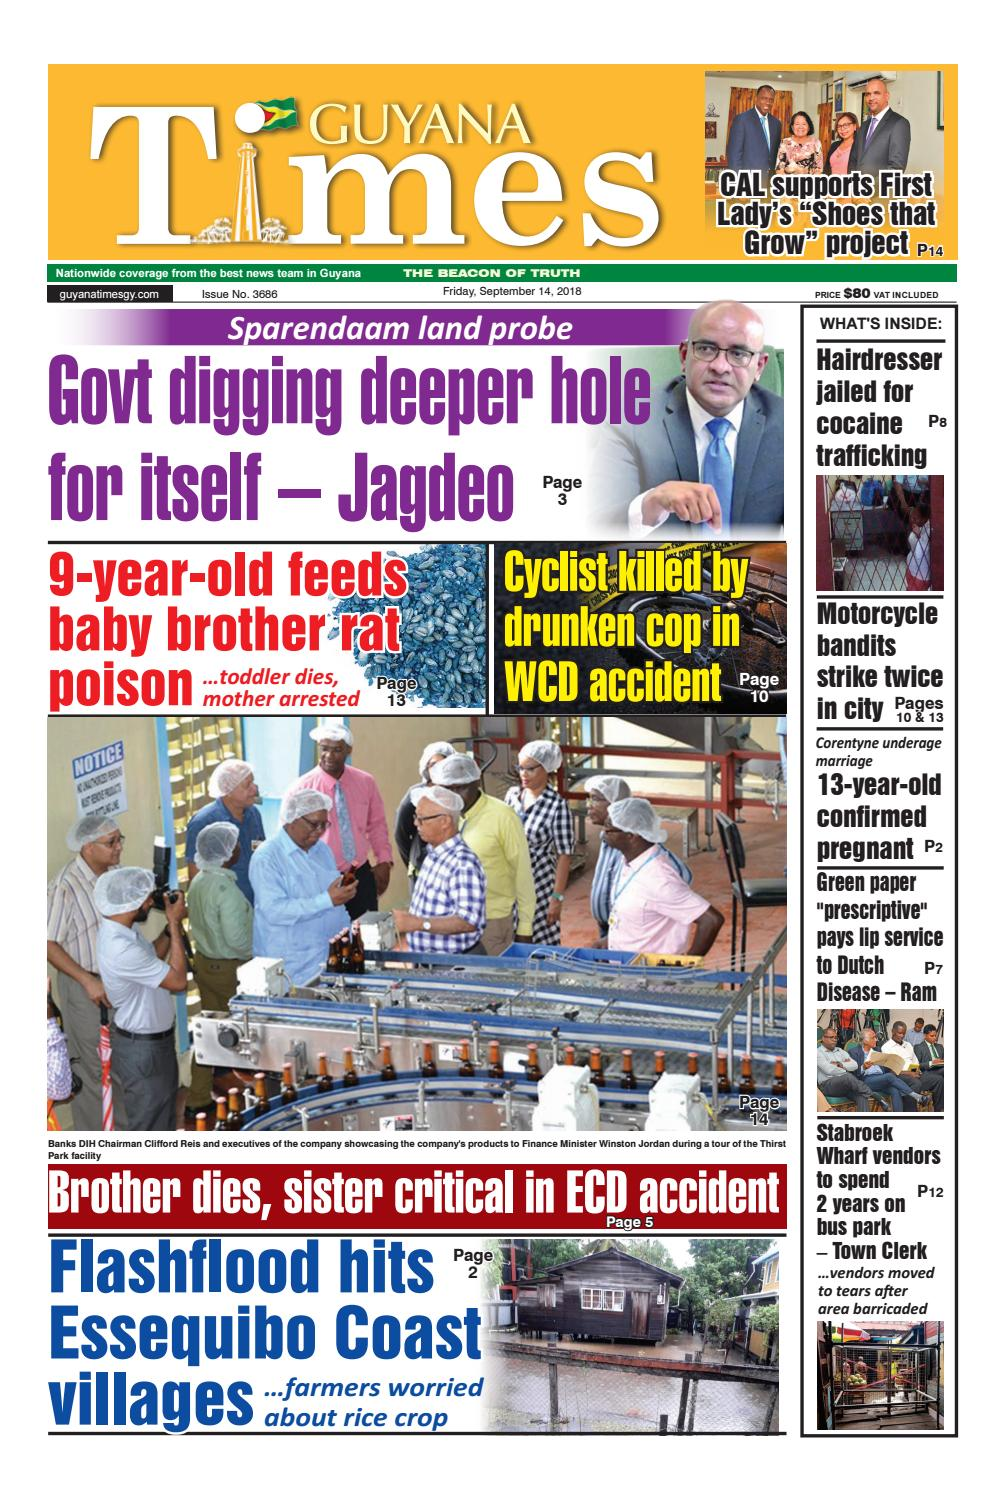 Guyana Times - Friday, September 14, 2018 by Gytimes - issuu